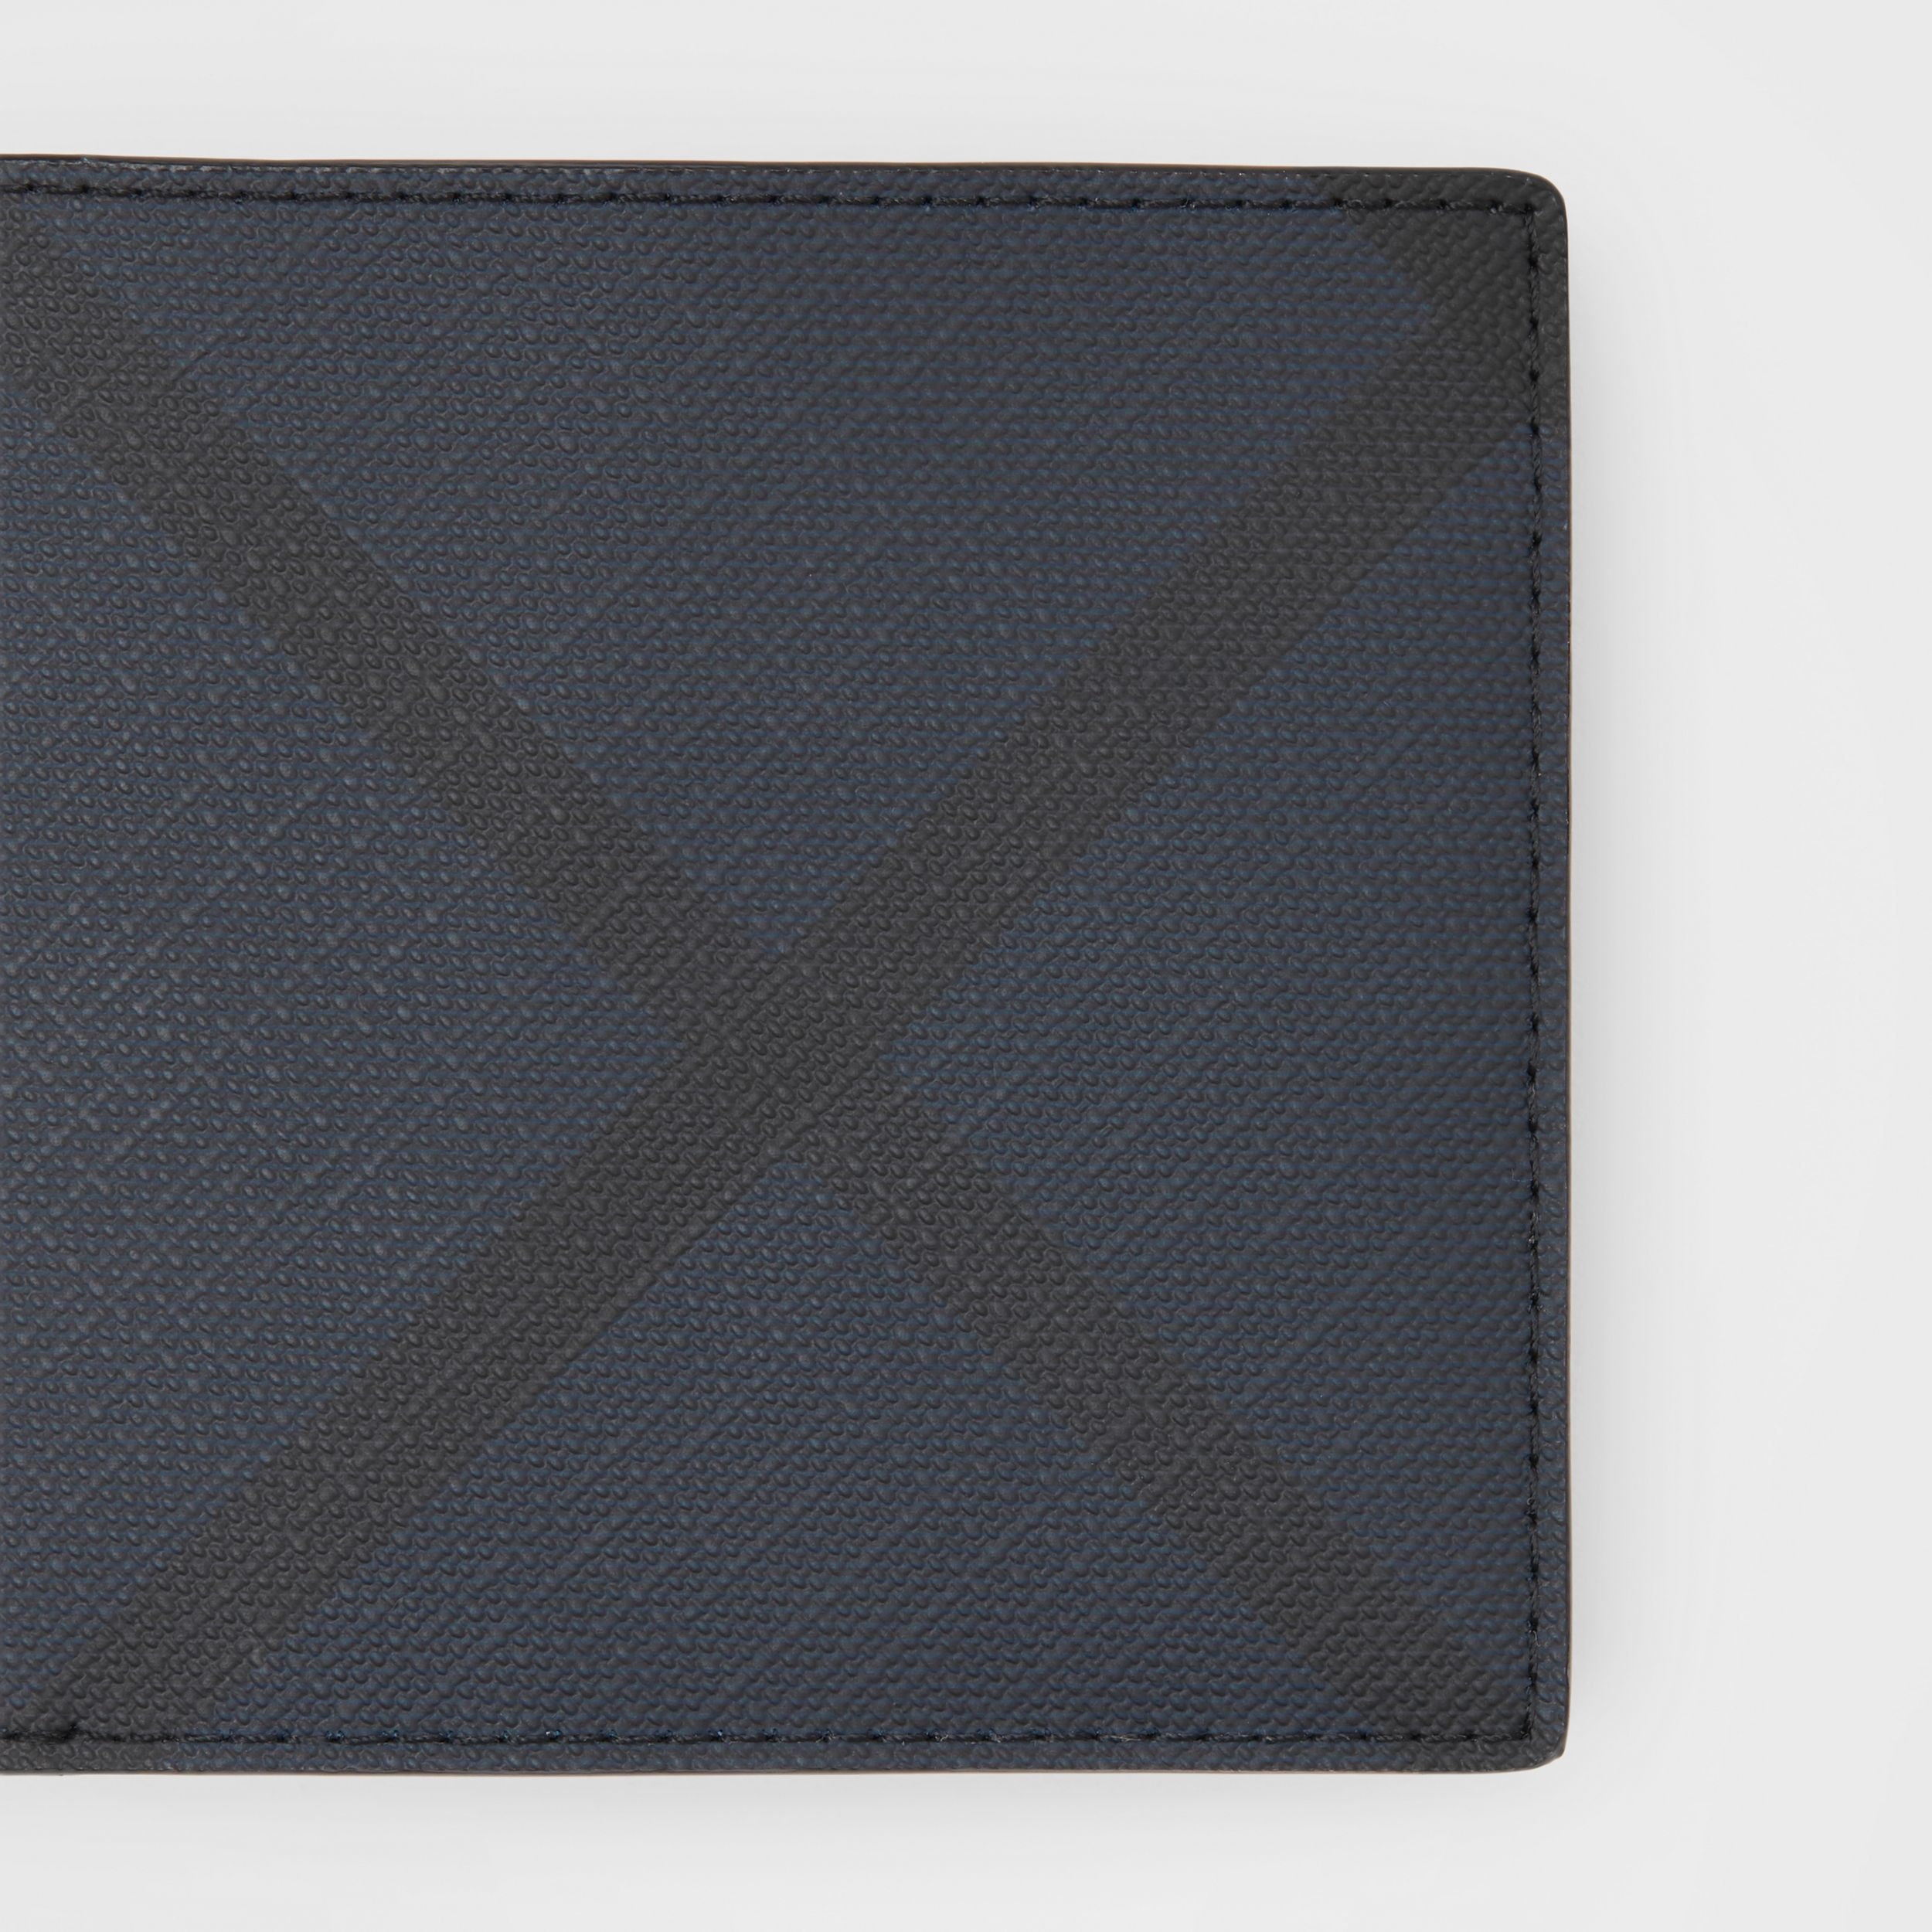 London Check and Leather International Bifold Wallet in Navy - Men | Burberry Singapore - 2